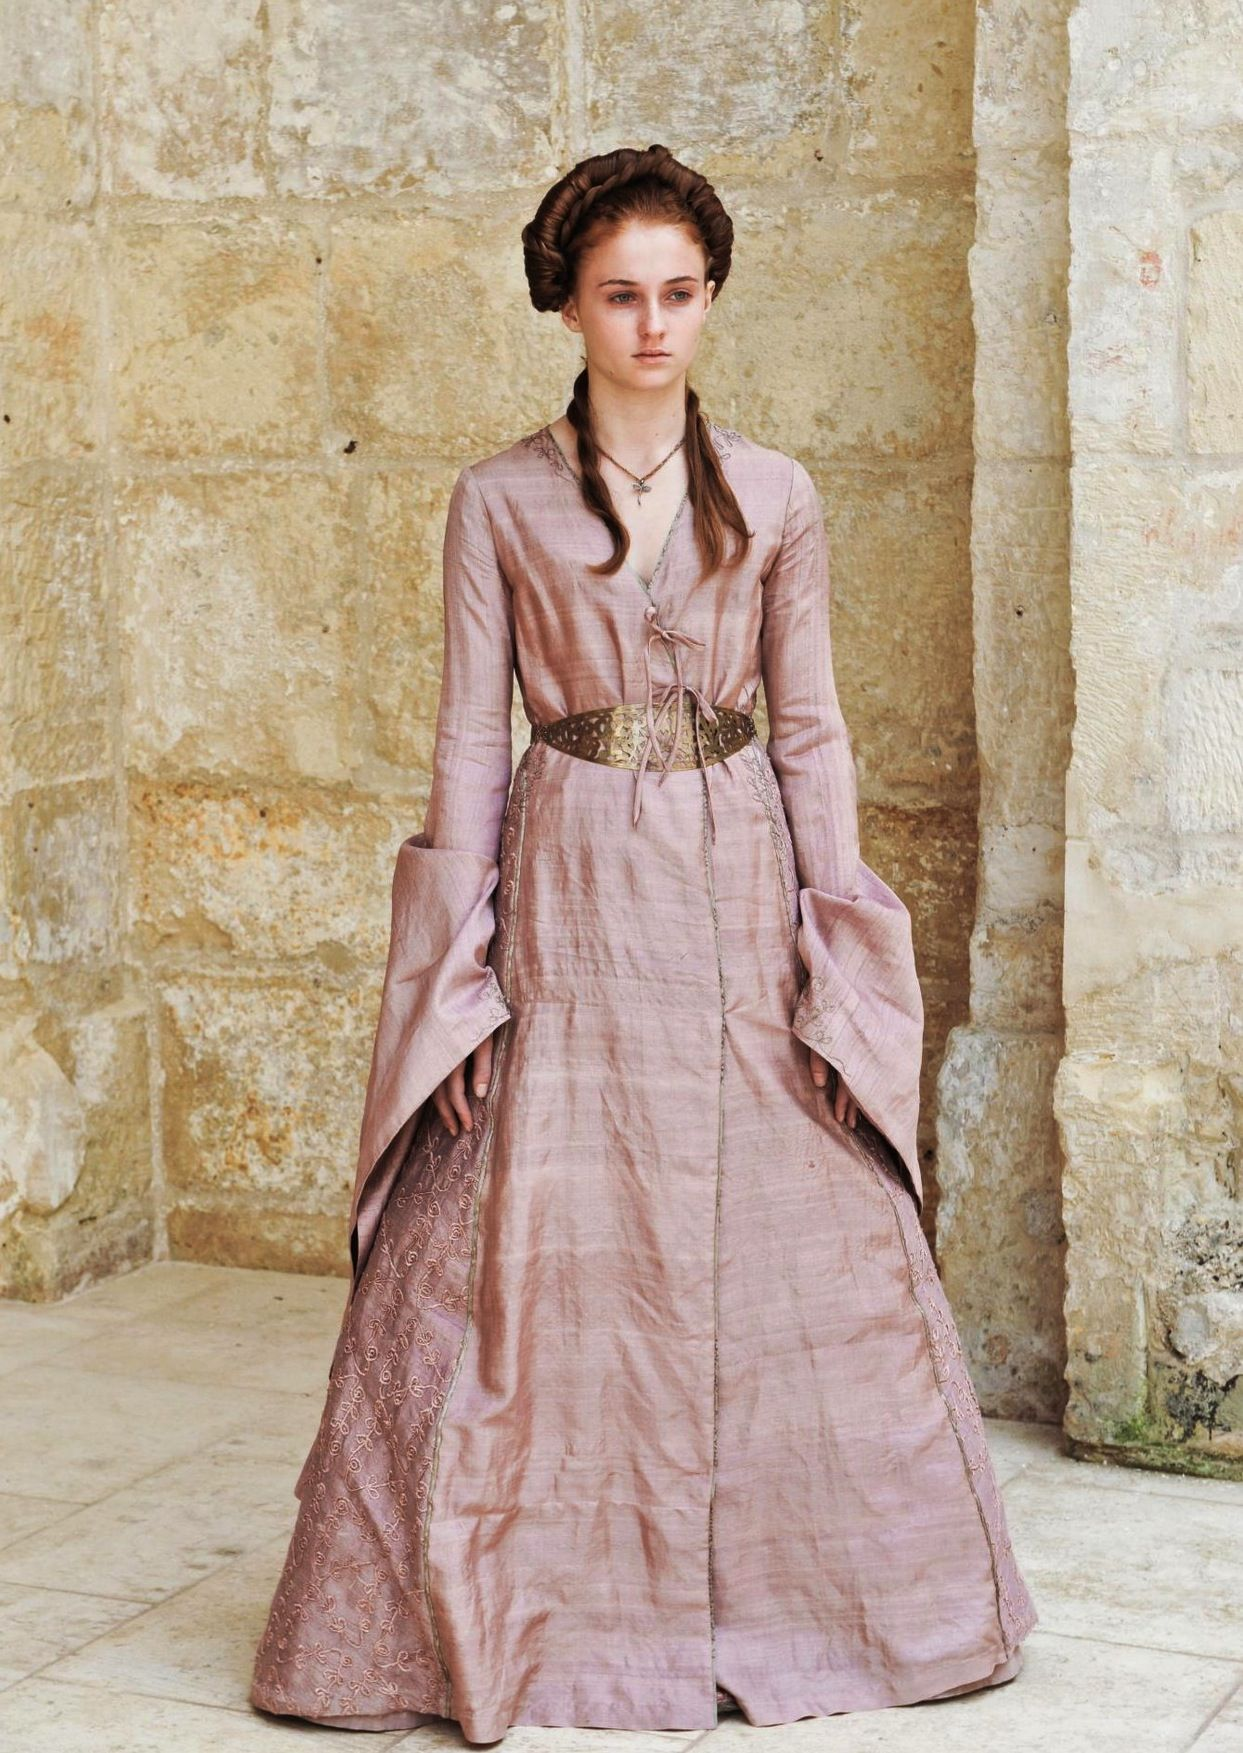 Game of Thrones, Sansa Stark wearing a soft pink dress in the first season.